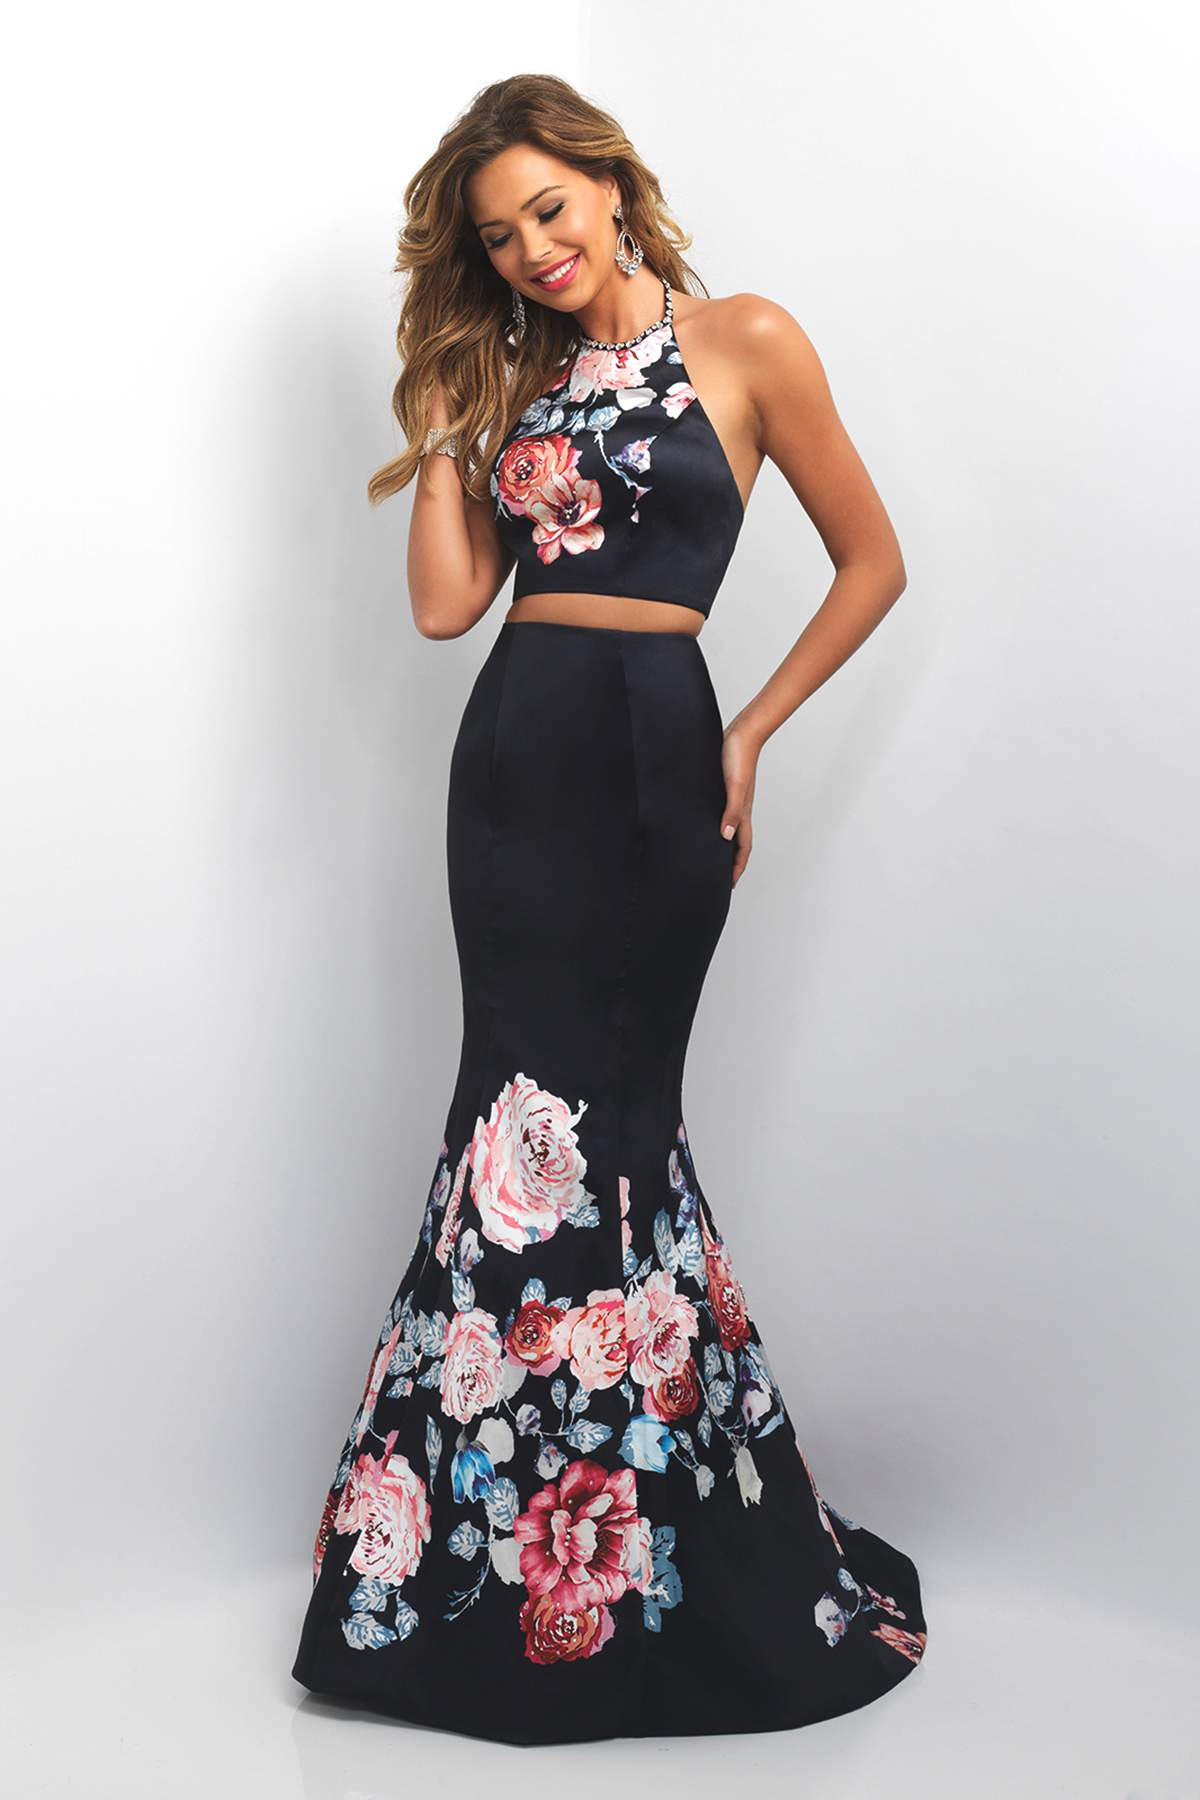 Magnificent prom dresses palisades mall images princess for Wedding dress consignment pittsburgh